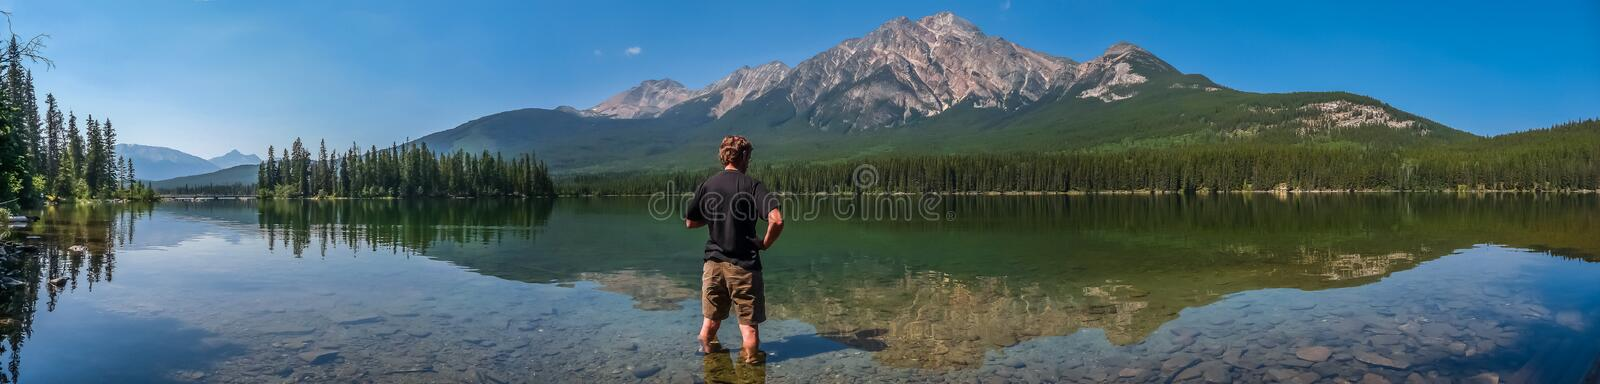 Beautiful nature landscape with mountain lake in British Columbia, Canada stock images